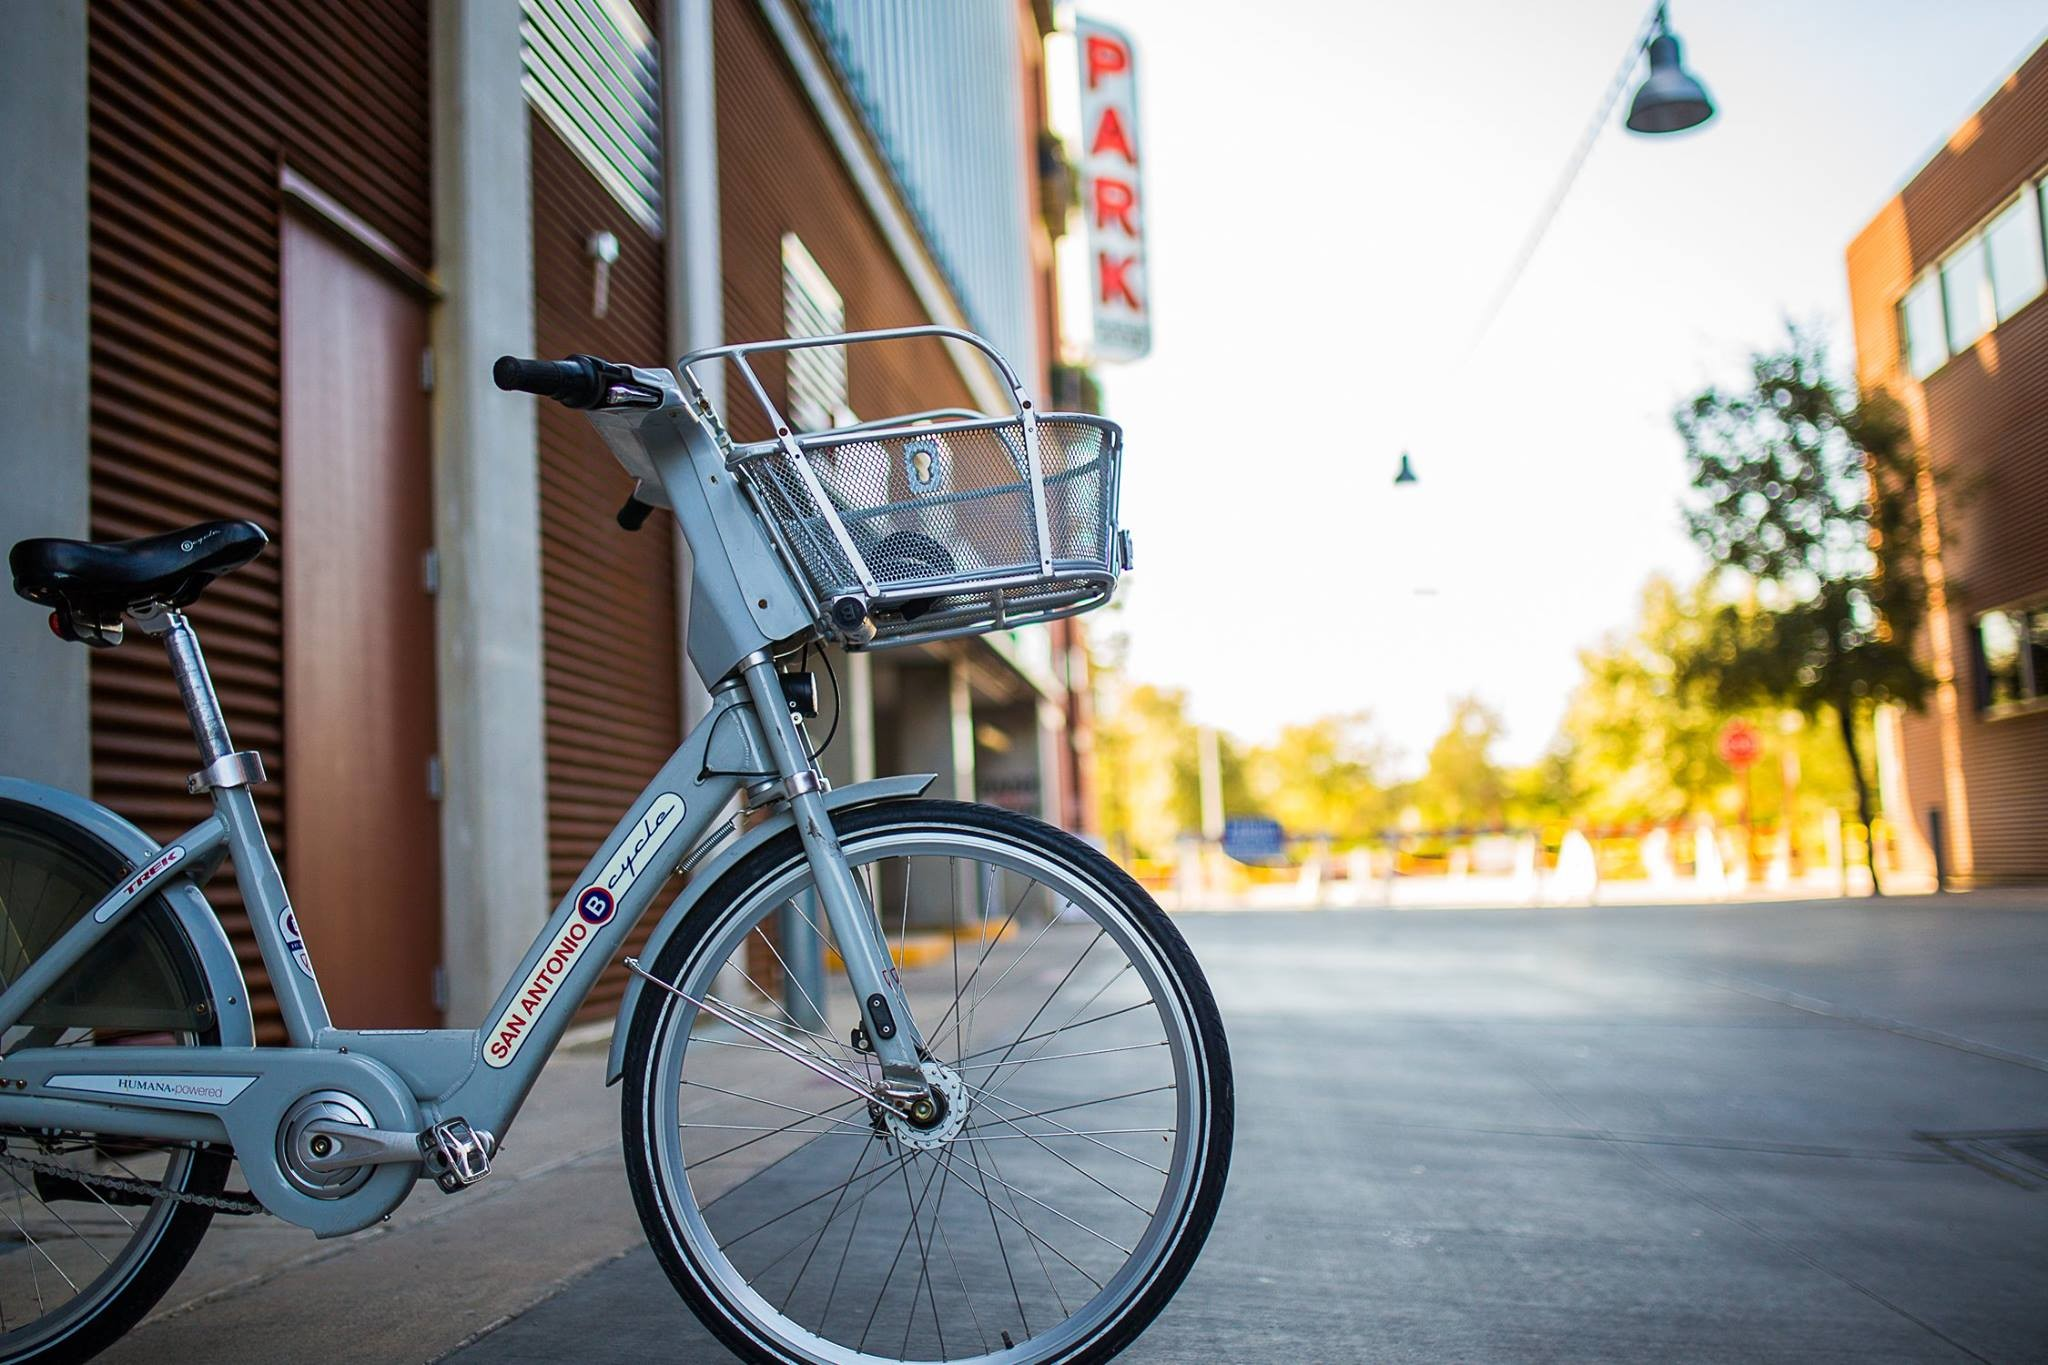 B Cycle Plans For Expansion With Via Transit City News